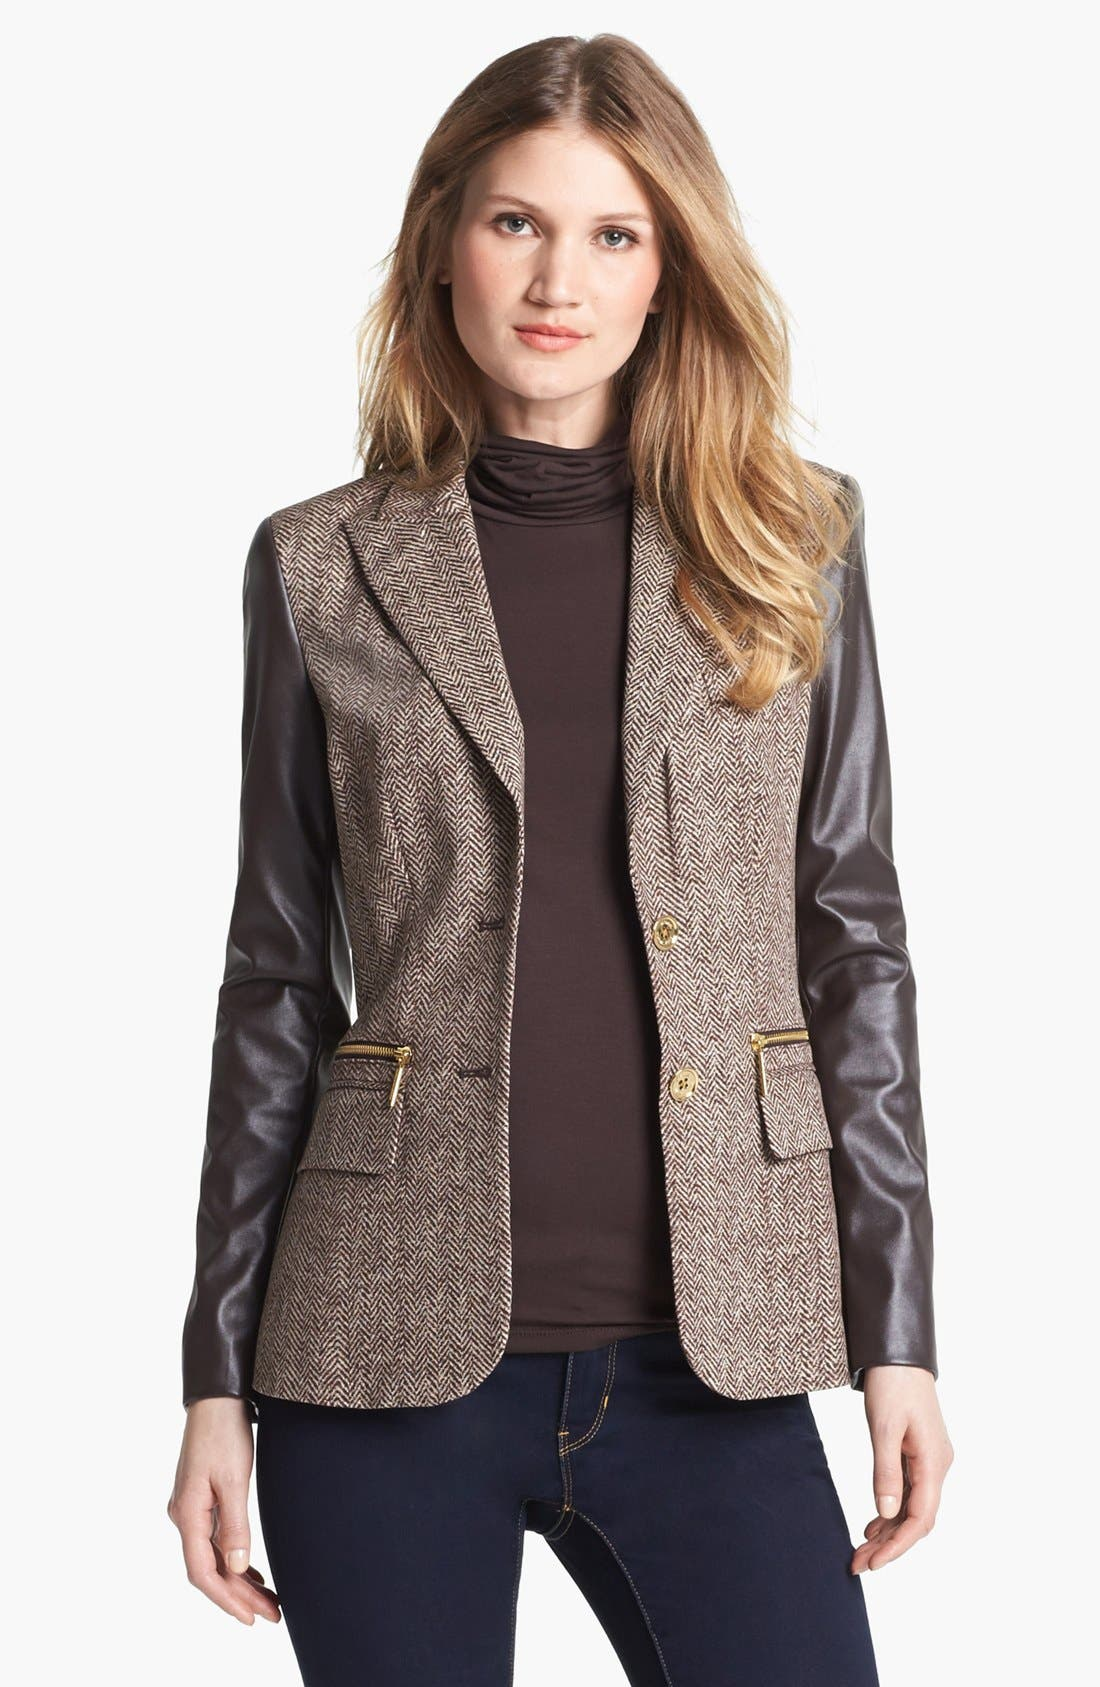 Alternate Image 1 Selected - MICHAEL Michael Kors Faux Leather Sleeve Tweed Blazer